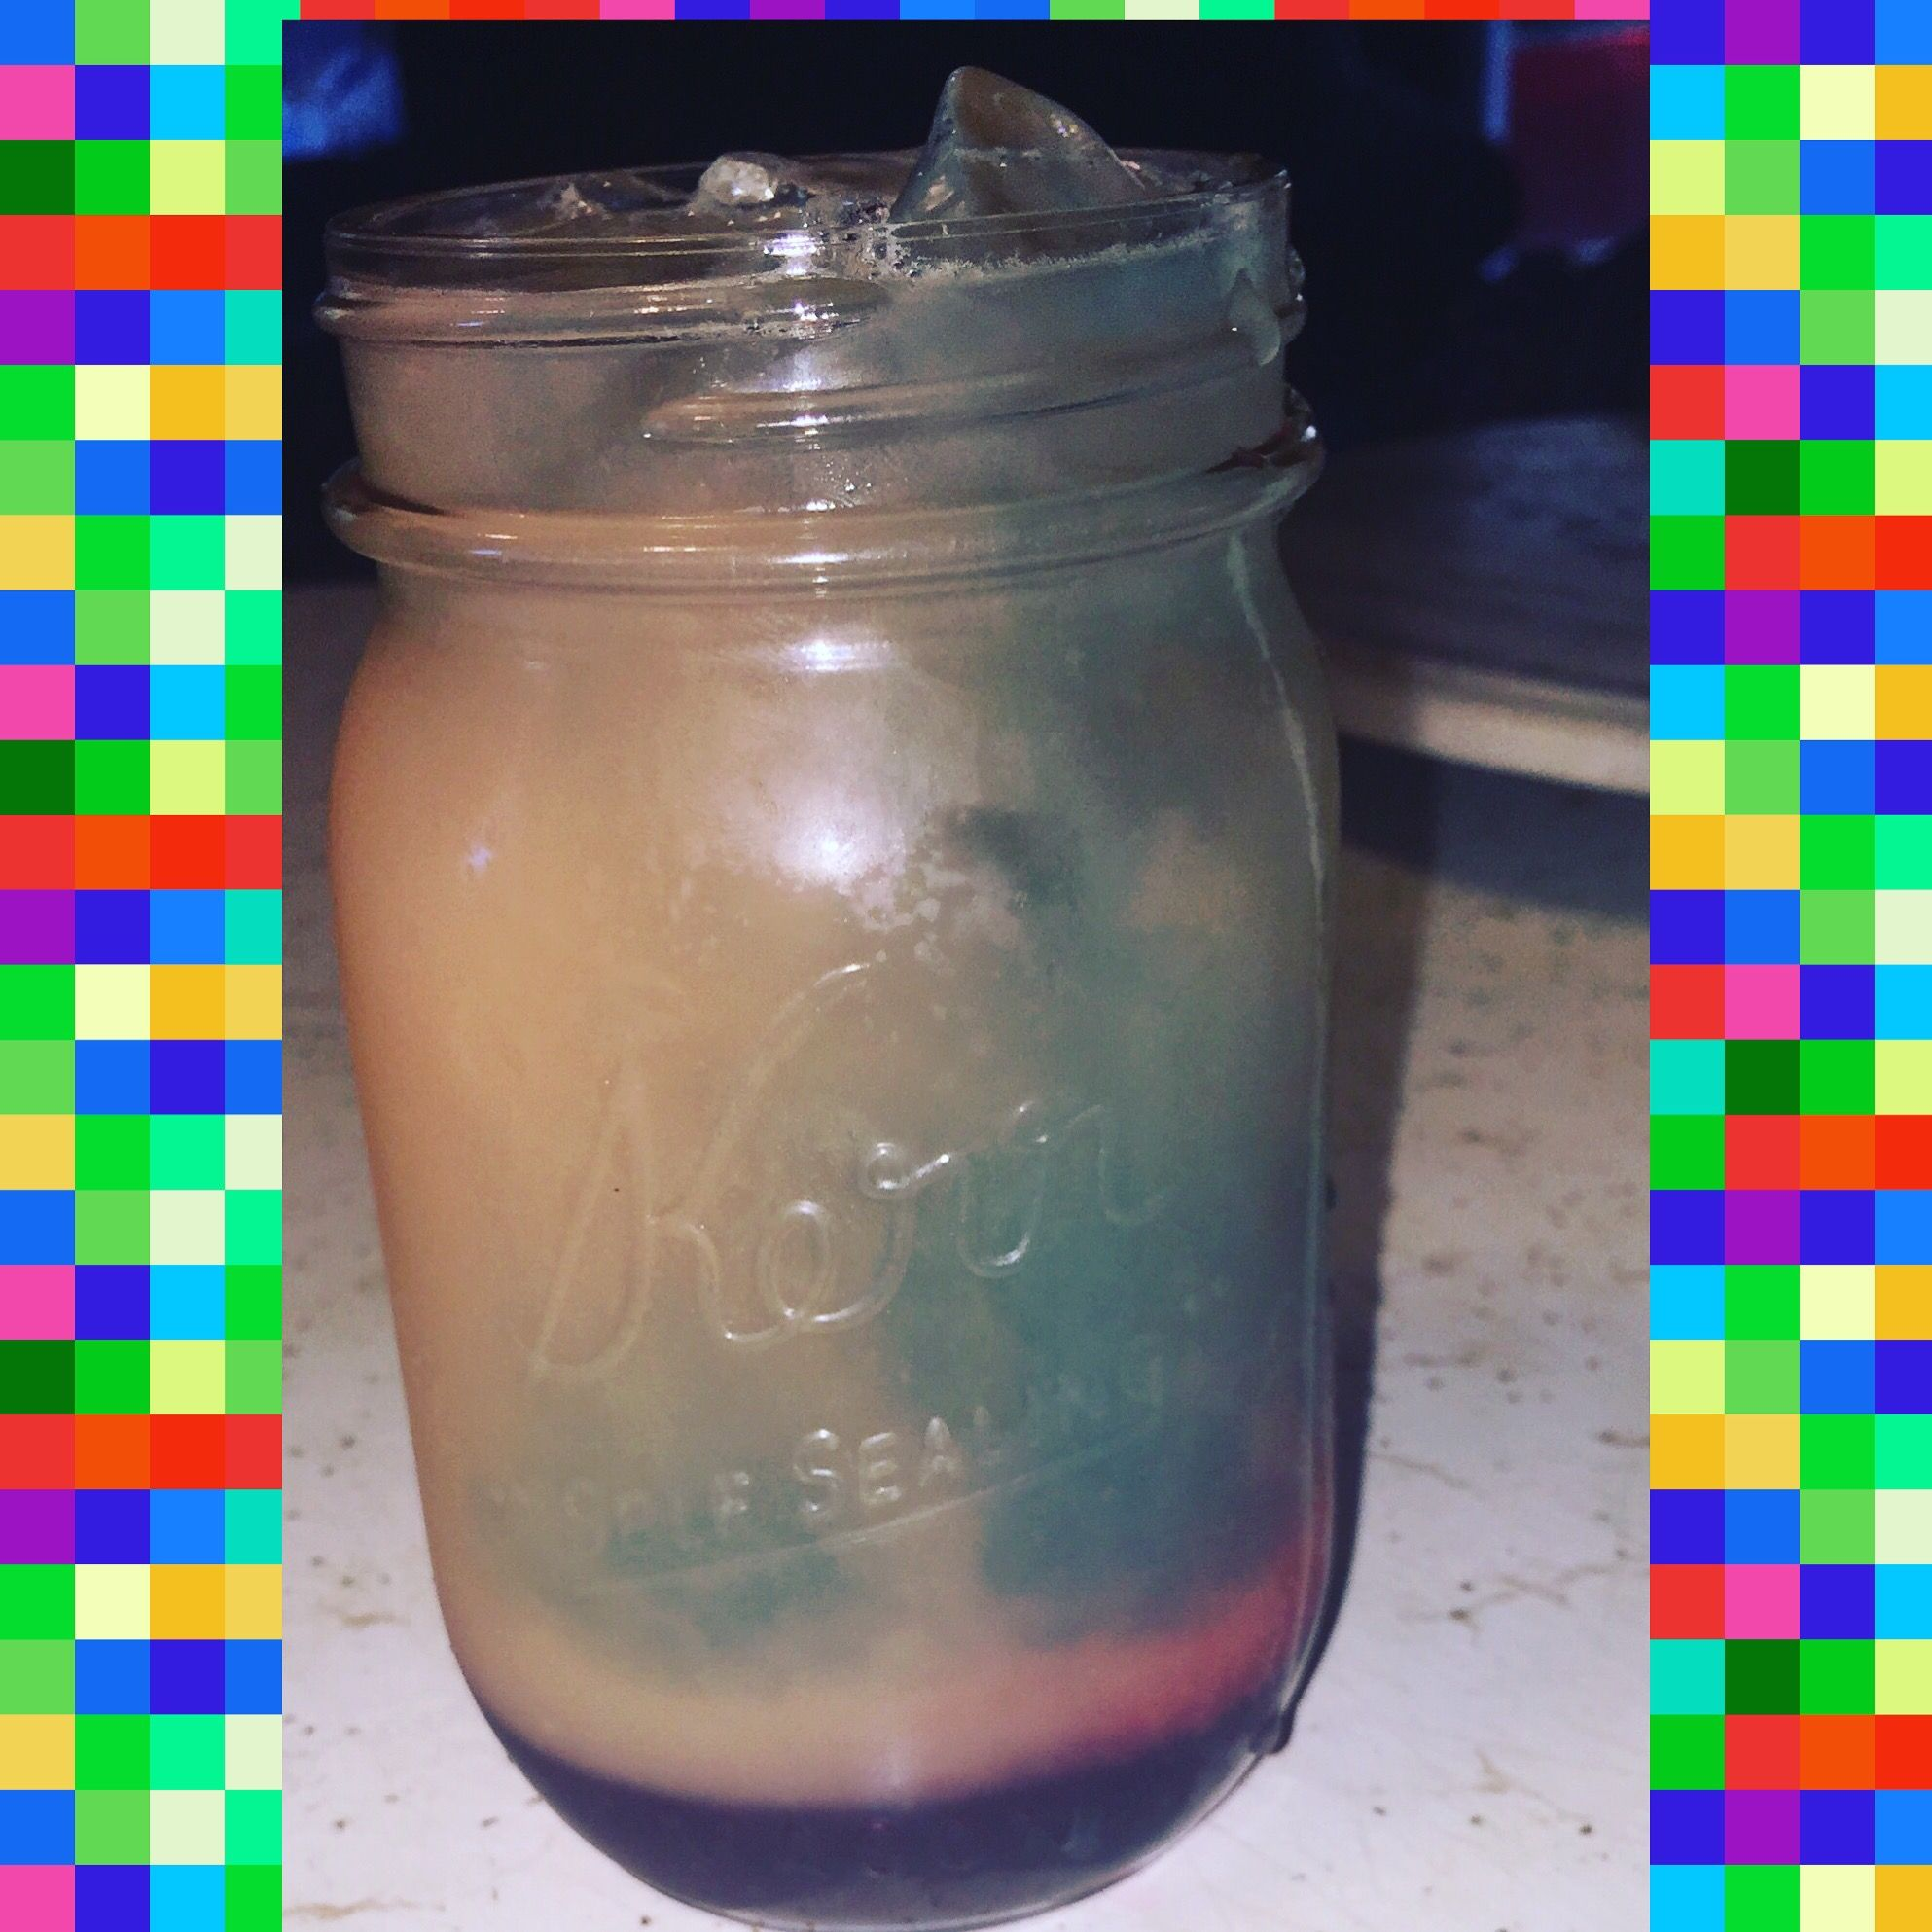 After a long week of work or maybe even want to wow your guest for a party this alcoholic beverage is sure to keep everyone feeling great with its sweet, crisp, and Mmmm's flavor. Definitely …